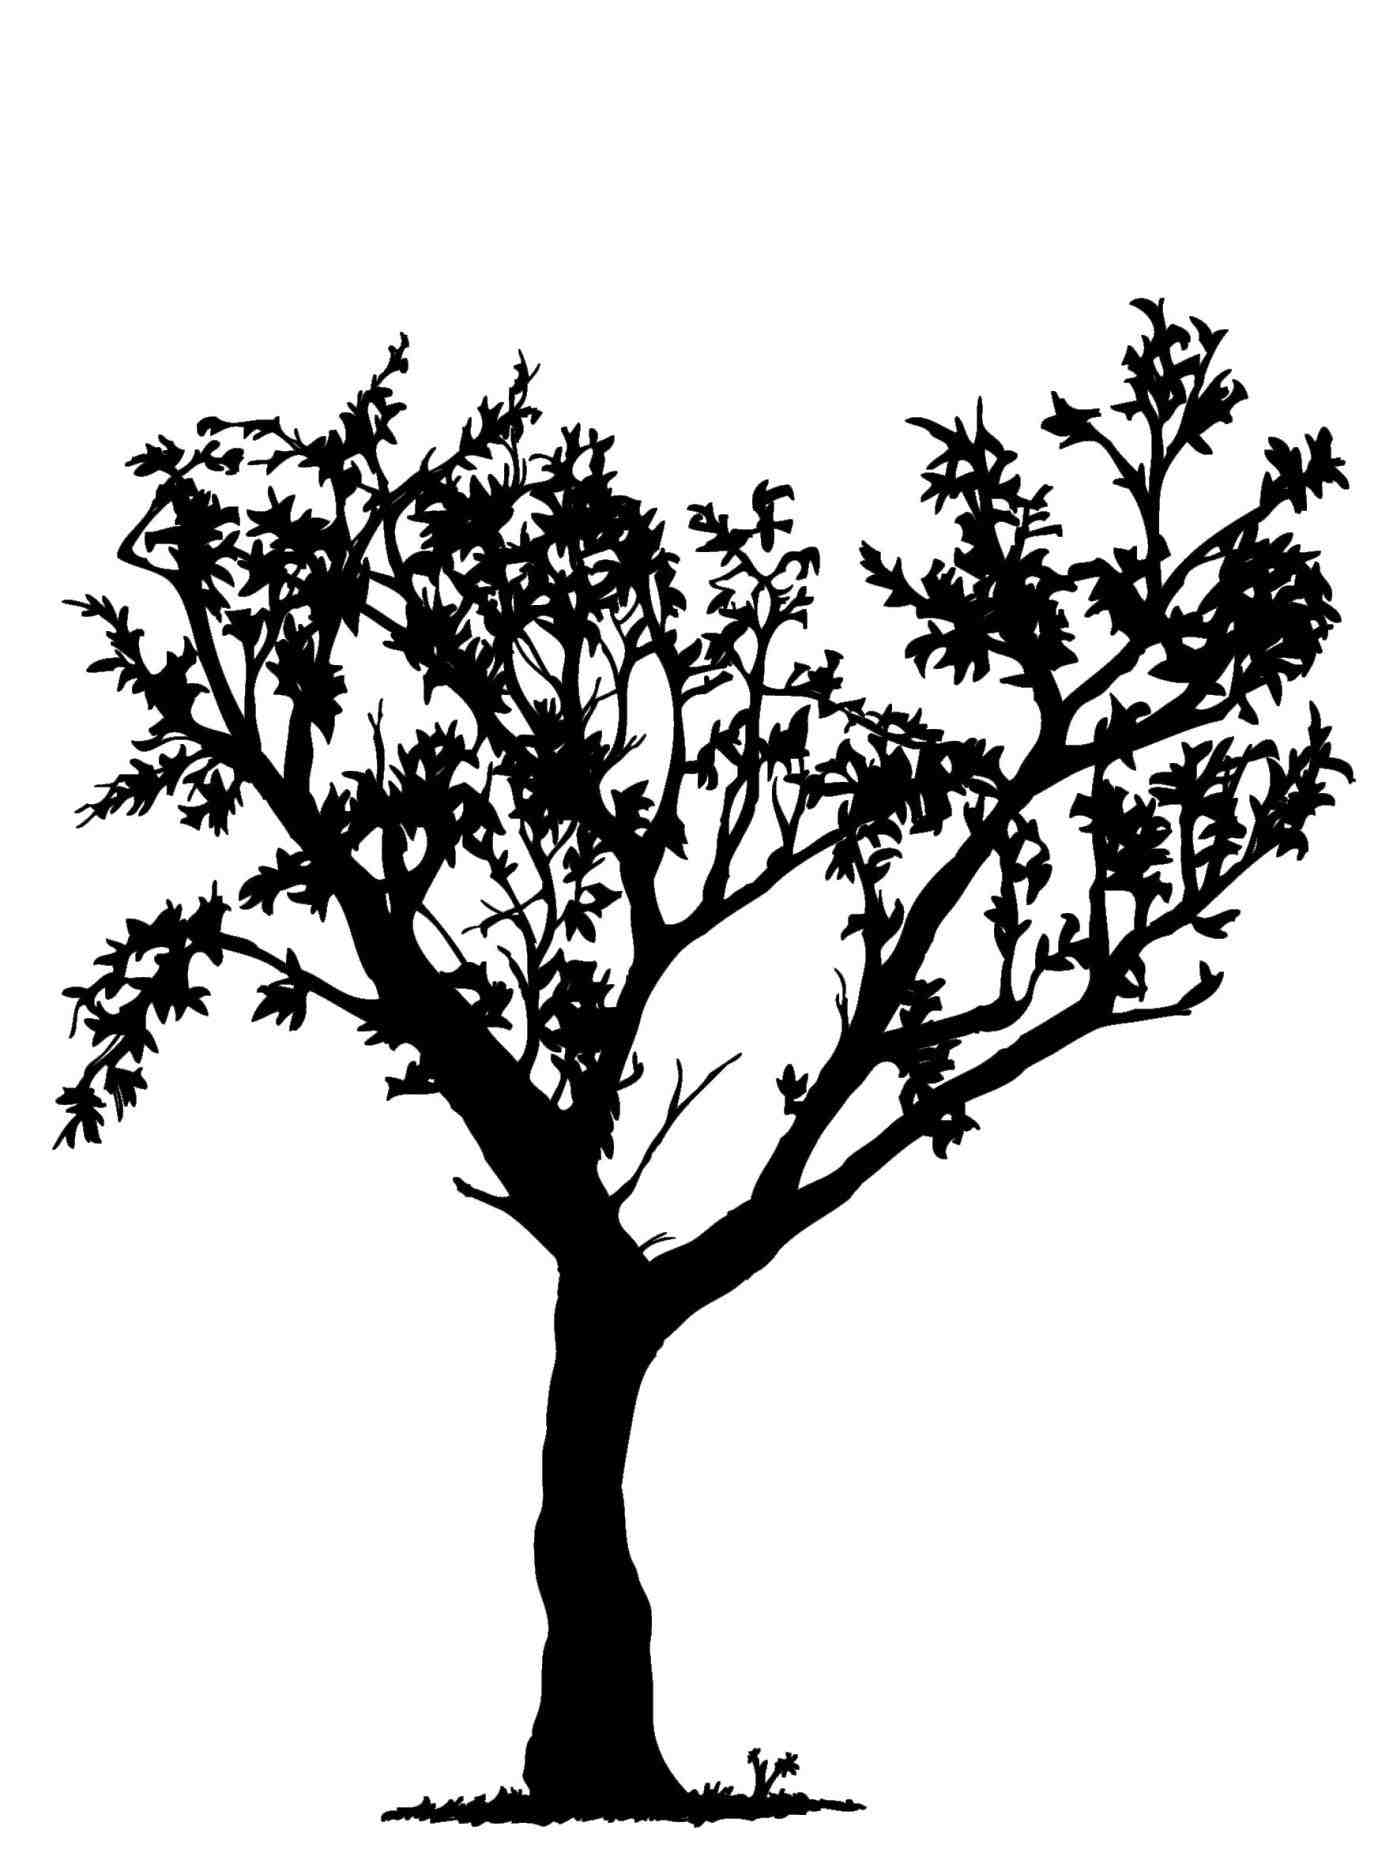 1378x1860 Drawing Tumblr Gallery Clip Art Library S Silhouette Png Image